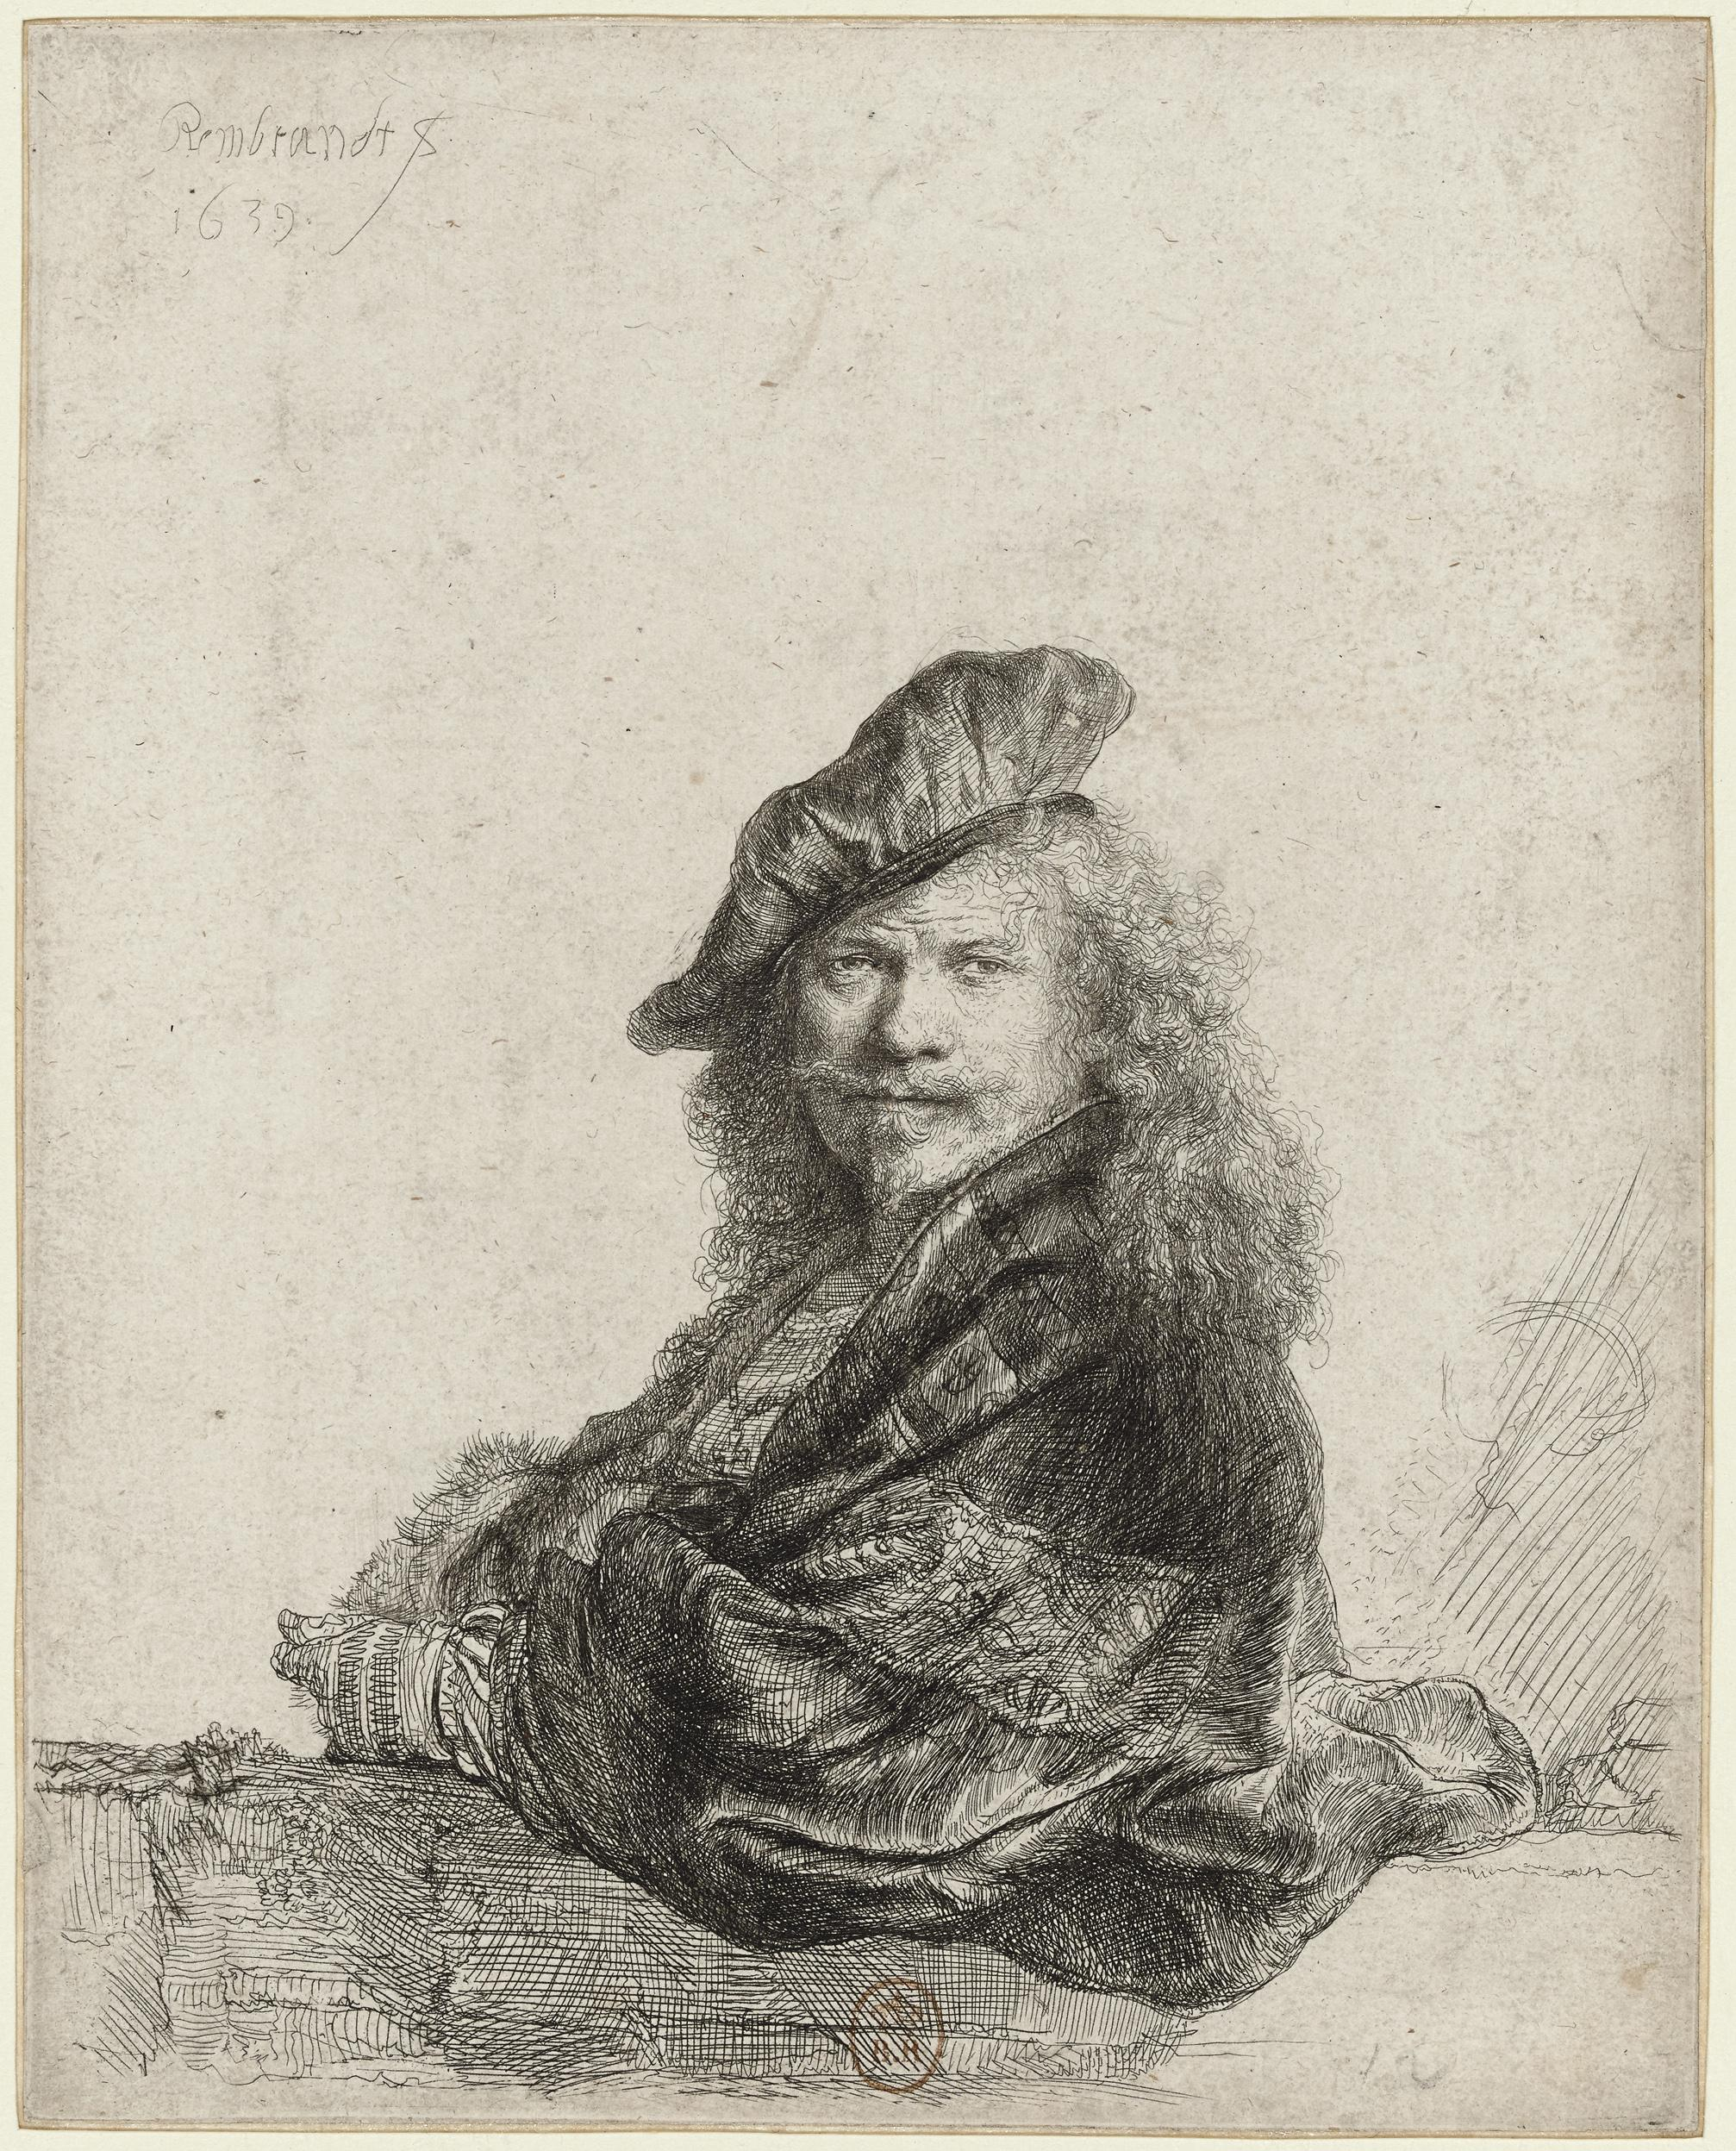 Rembrandt van Rijn, Self-Portrait Leaning on a Stone Sill, 1639